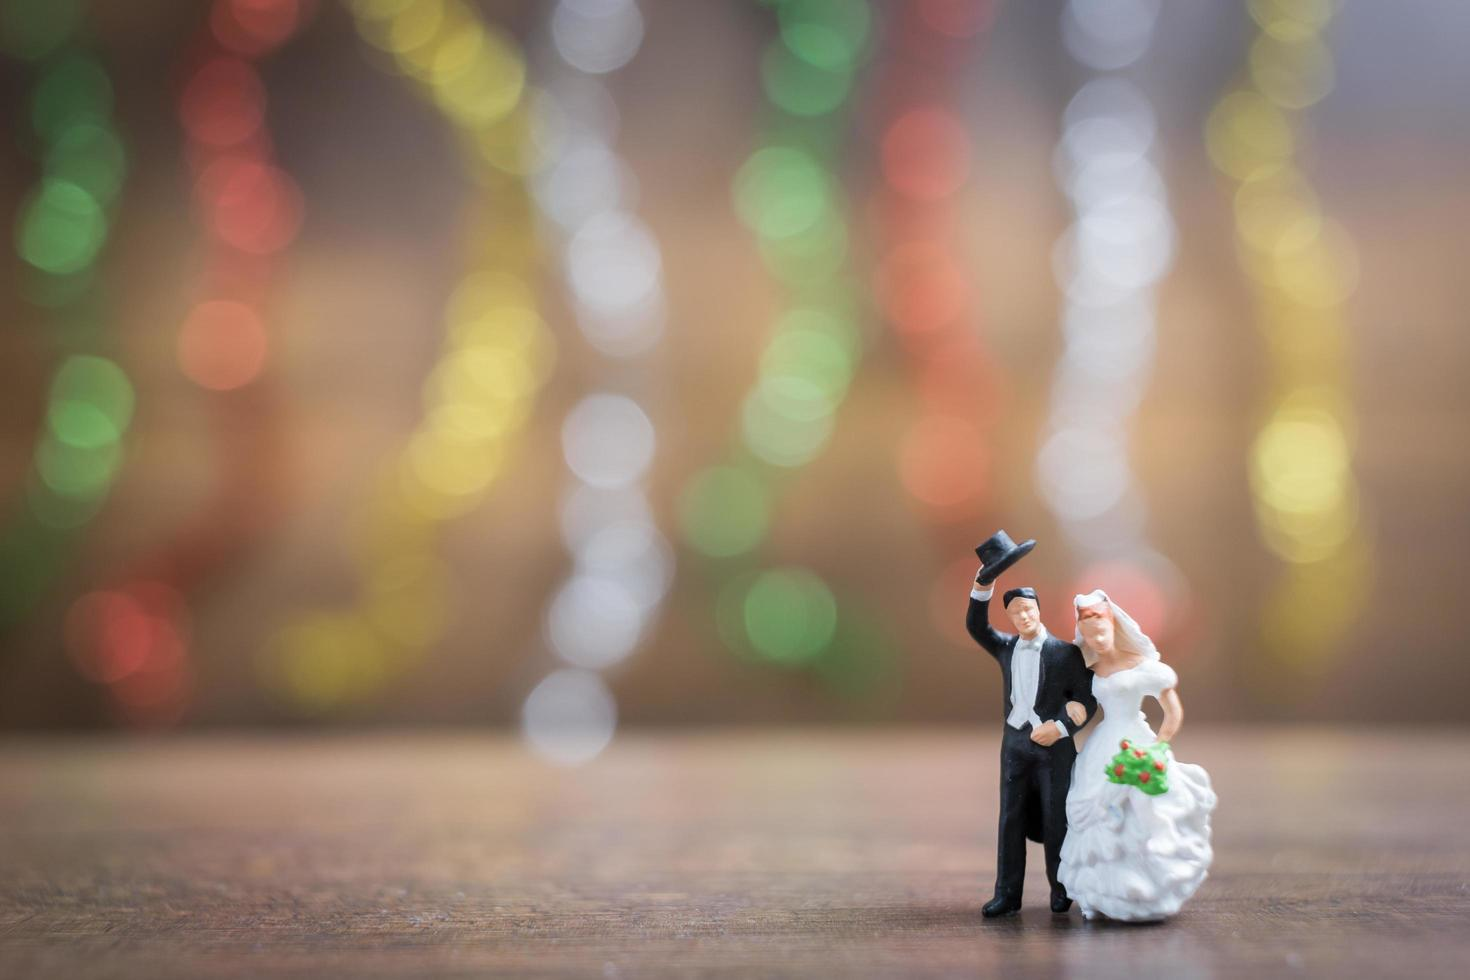 Miniature bride and groom on a wooden floor with colorful bokeh background, successful family concept photo